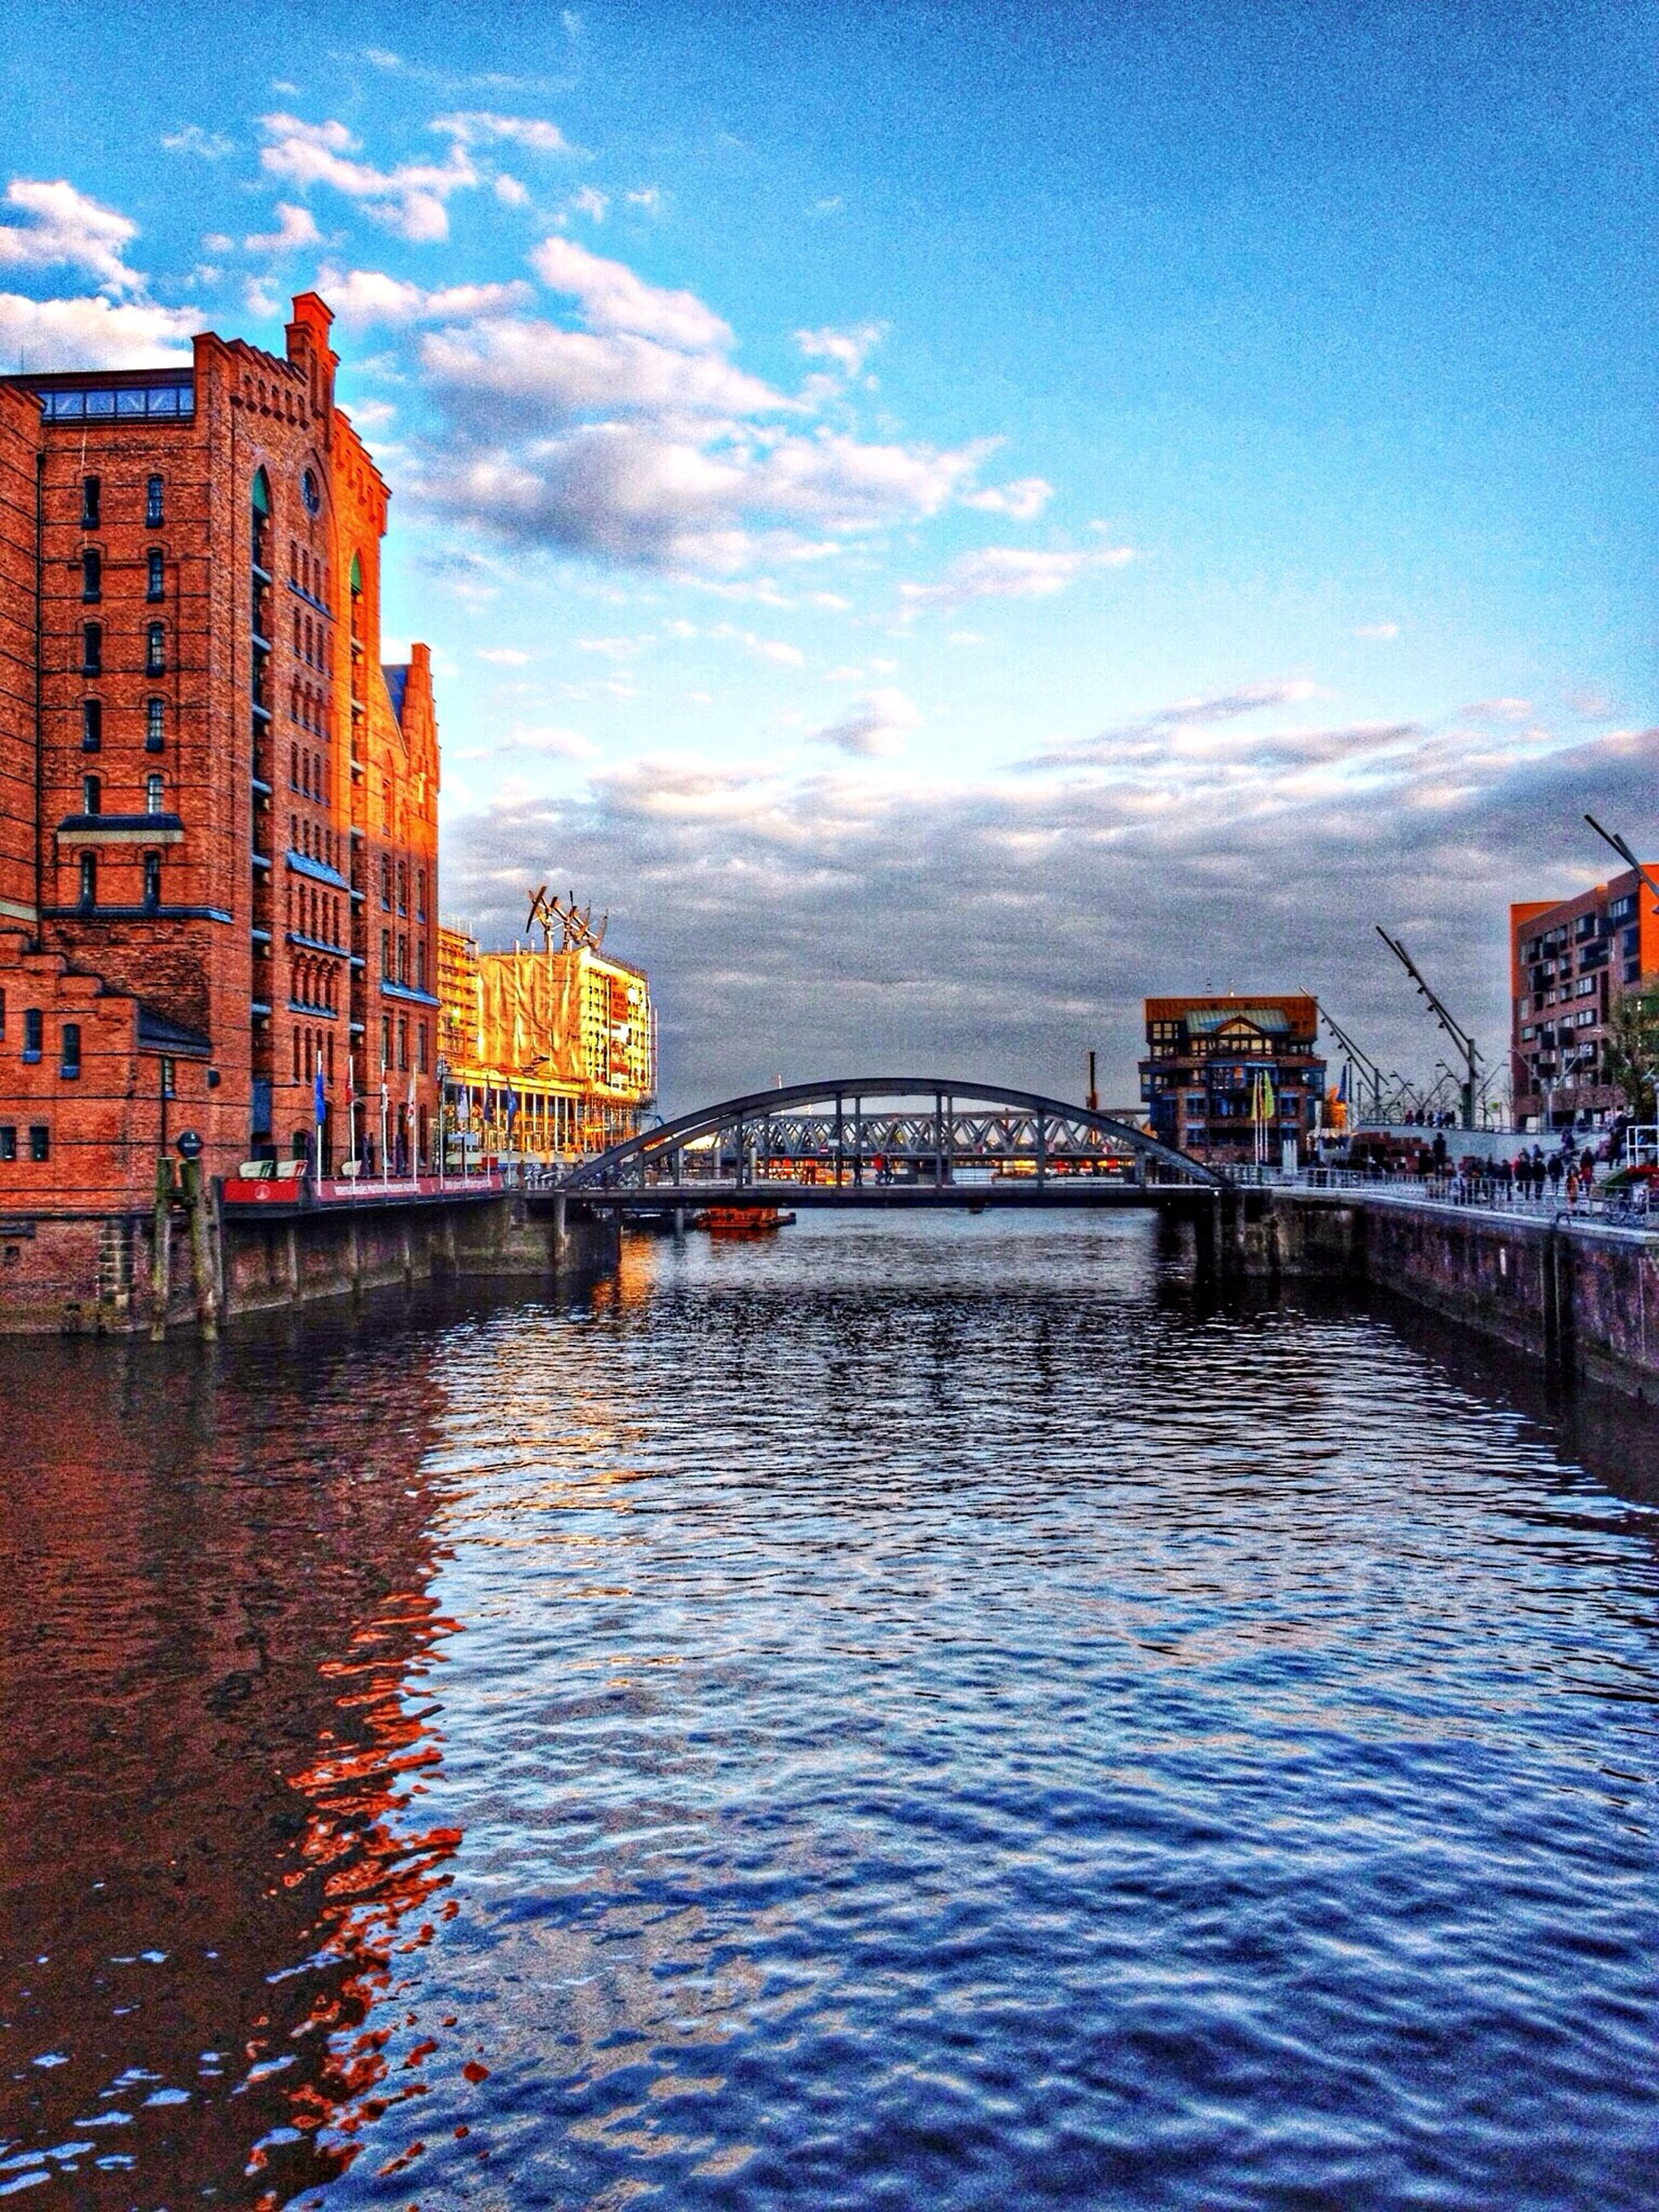 architecture, built structure, water, building exterior, waterfront, sky, bridge - man made structure, connection, river, rippled, bridge, cloud - sky, cloud, city, mountain, canal, residential structure, residential building, outdoors, no people